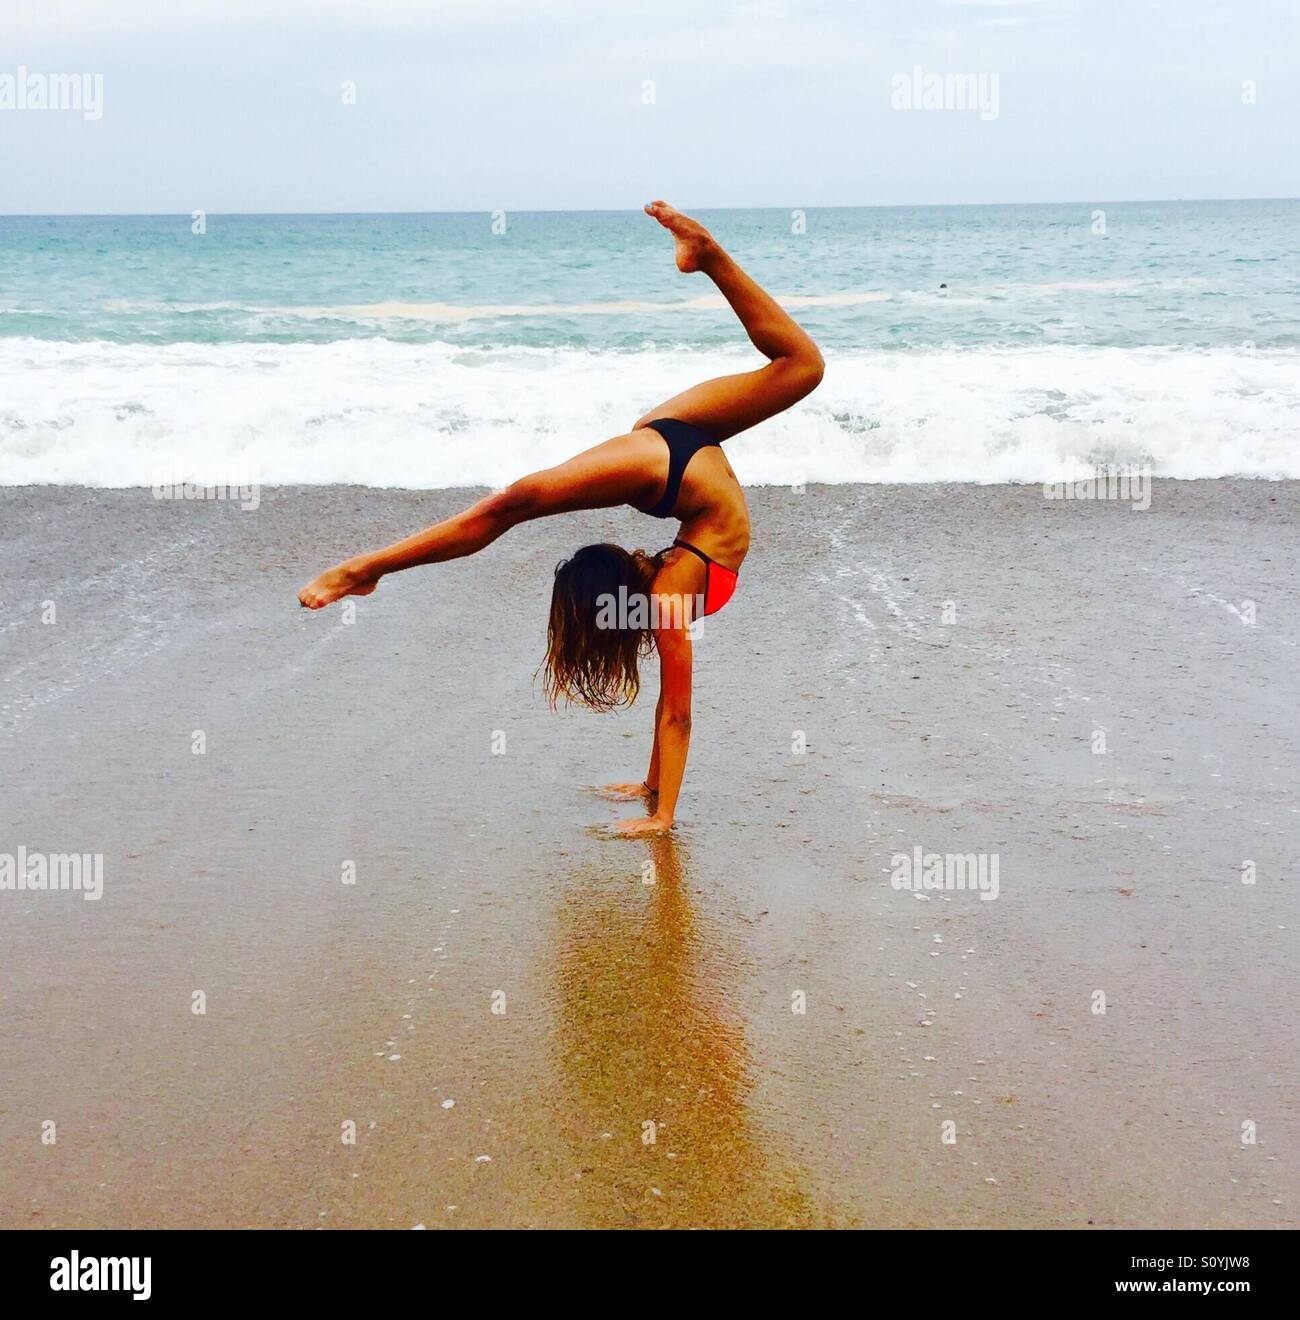 61def3bcff77bf Doing flips on the beach Stock Photo  310394148 - Alamy